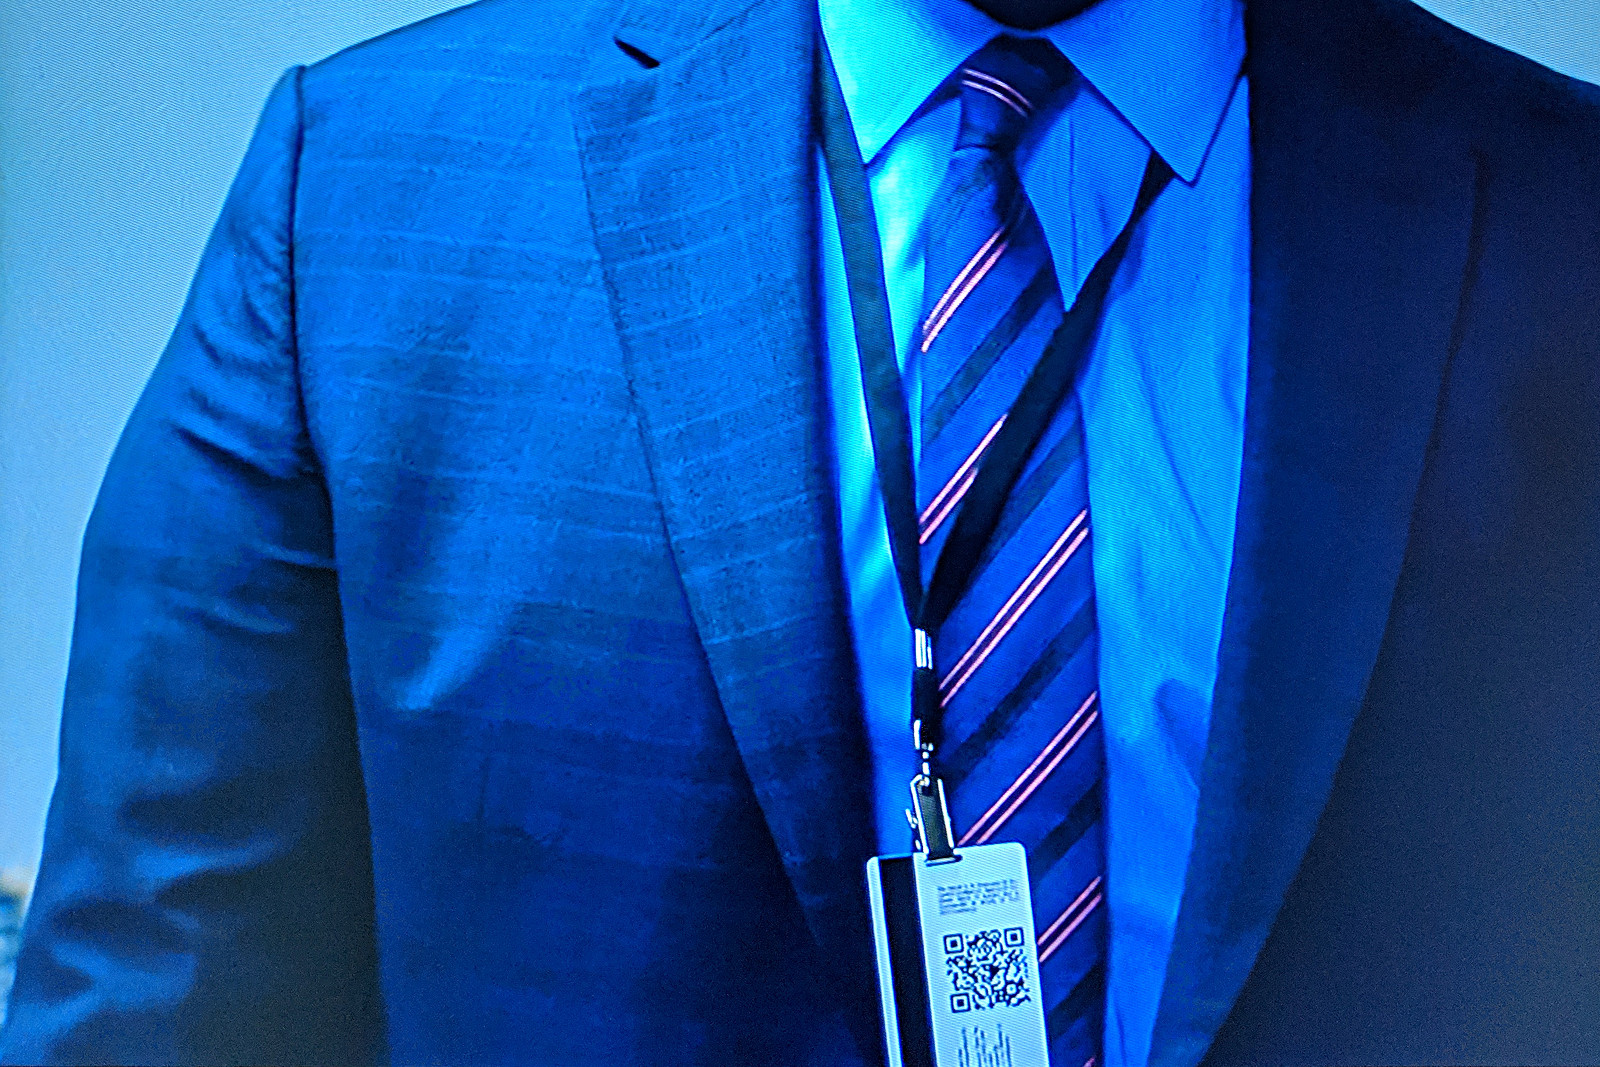 Screenshot from episode 1 of Tom Clancy's Jack Ryan, showing justinsomnia.org QR Code on James Greer's badge, close-up